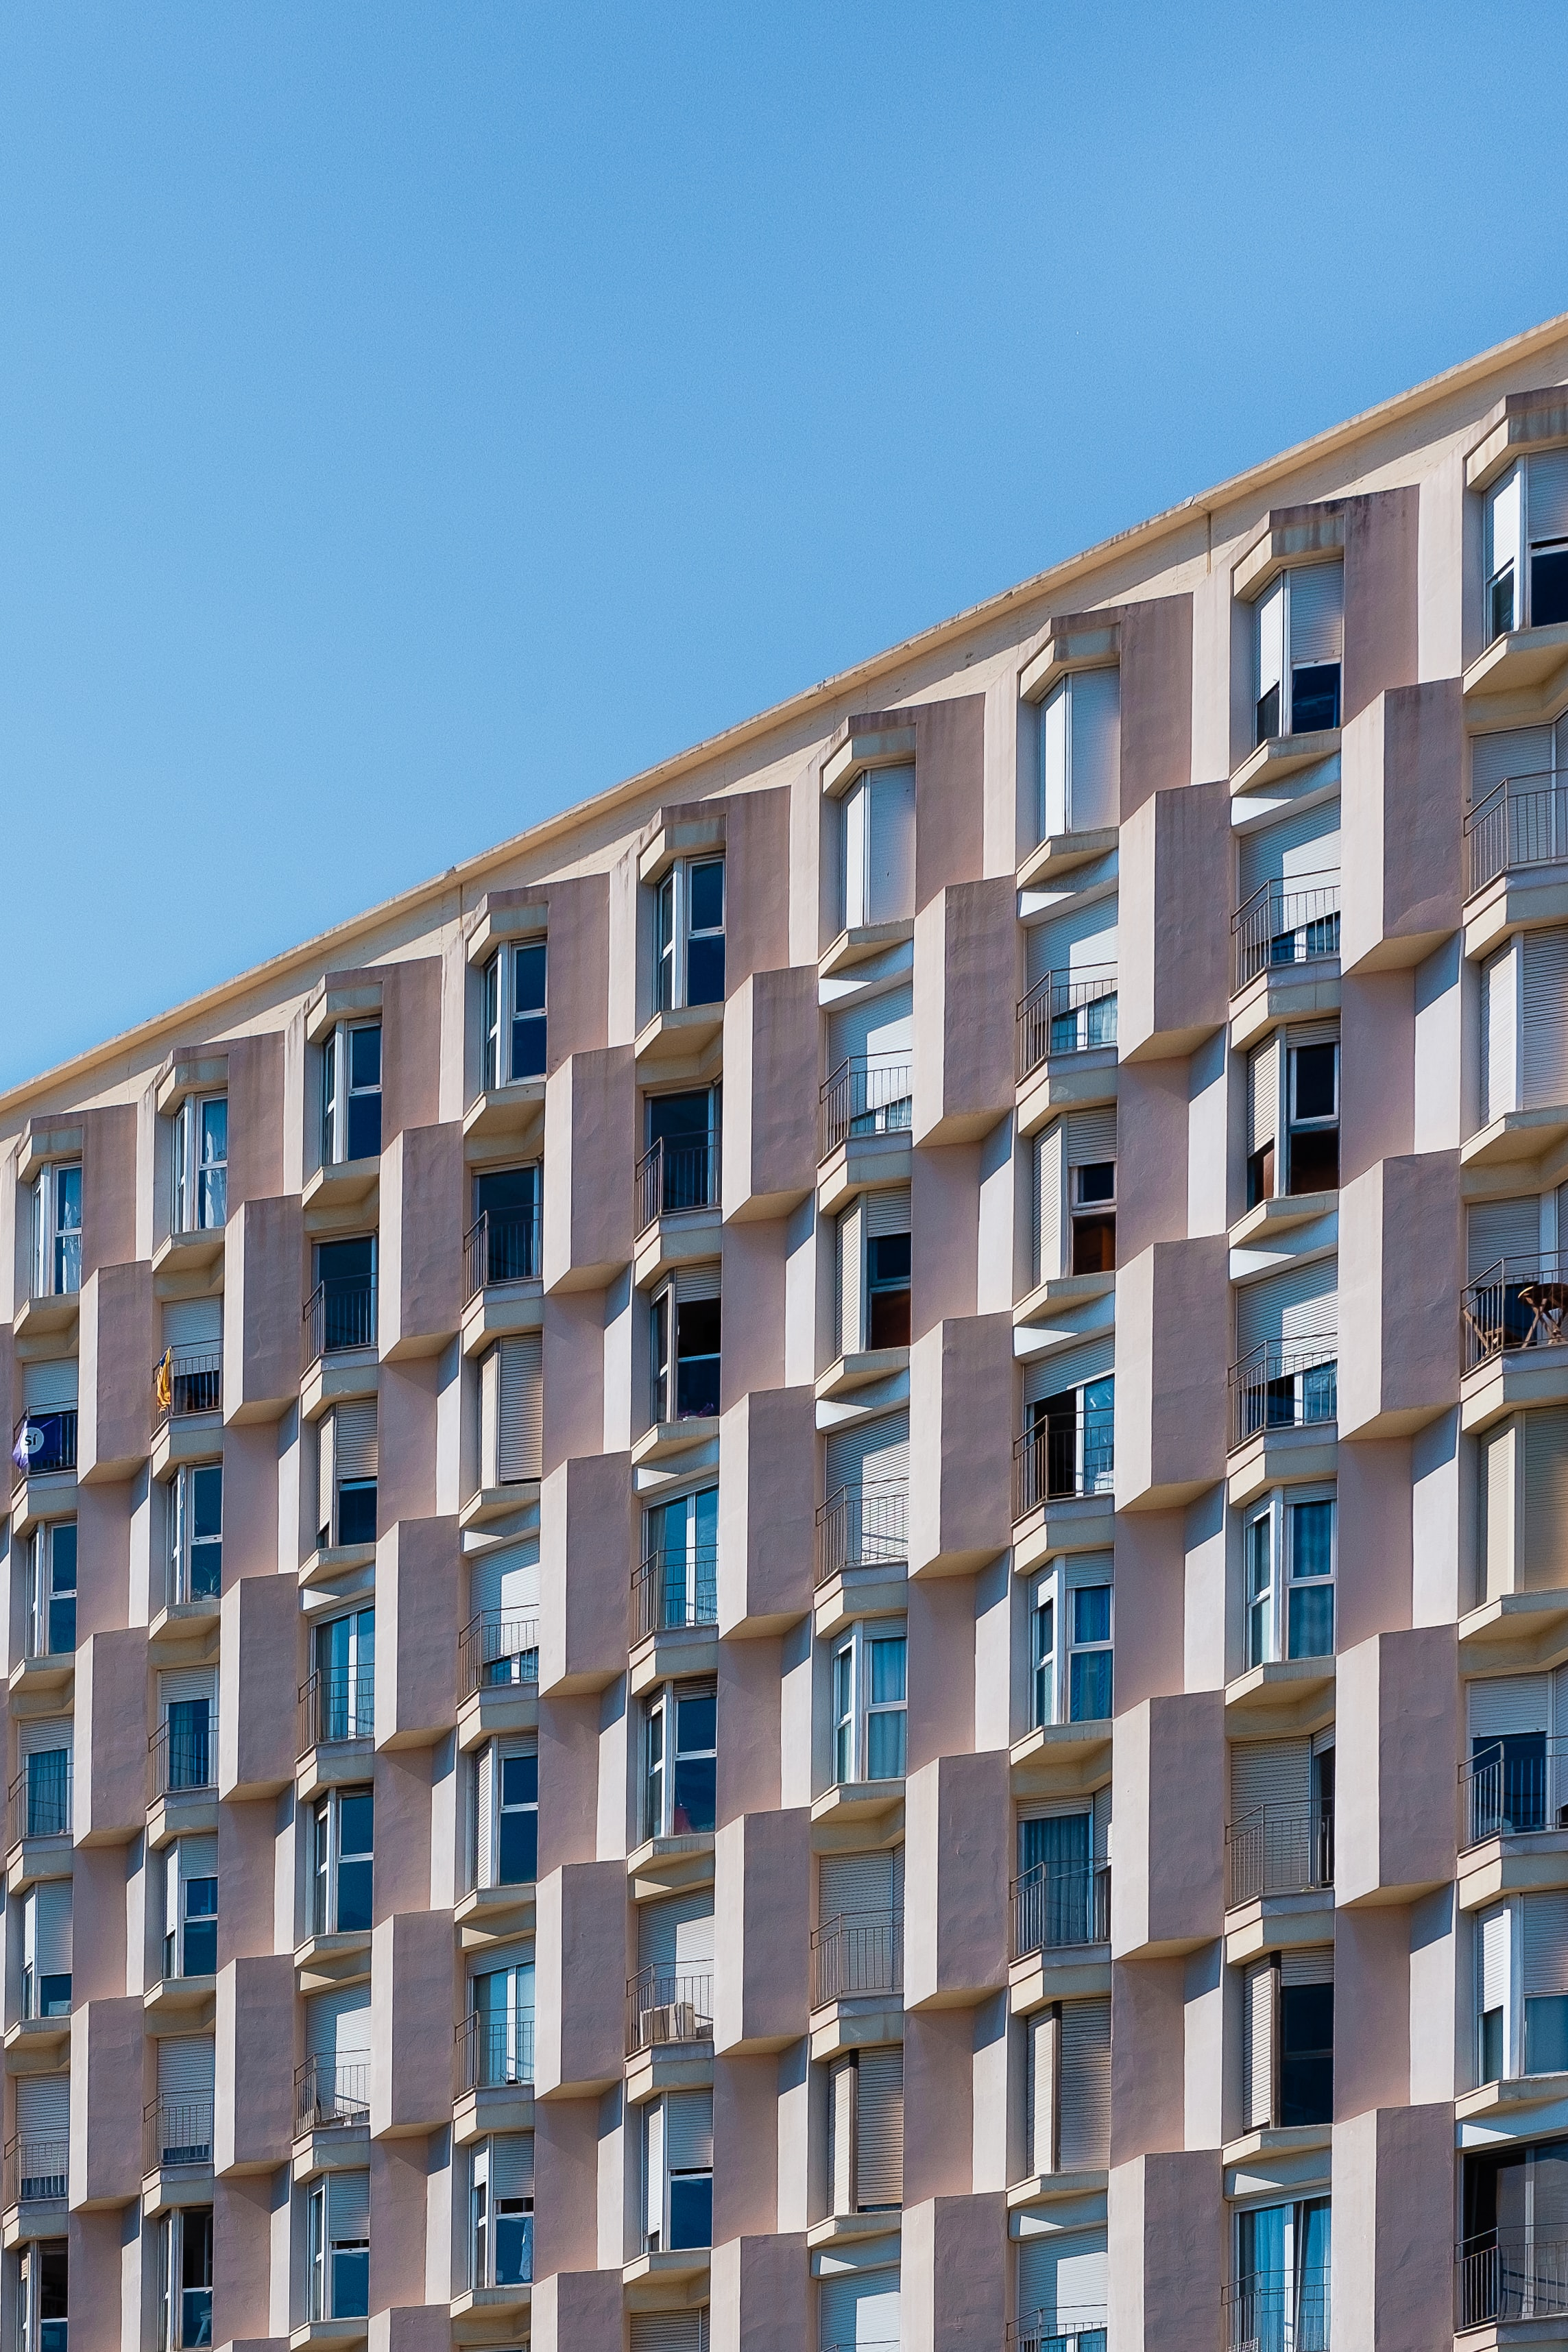 A pink residential building facade in Barcelona under a blue sky